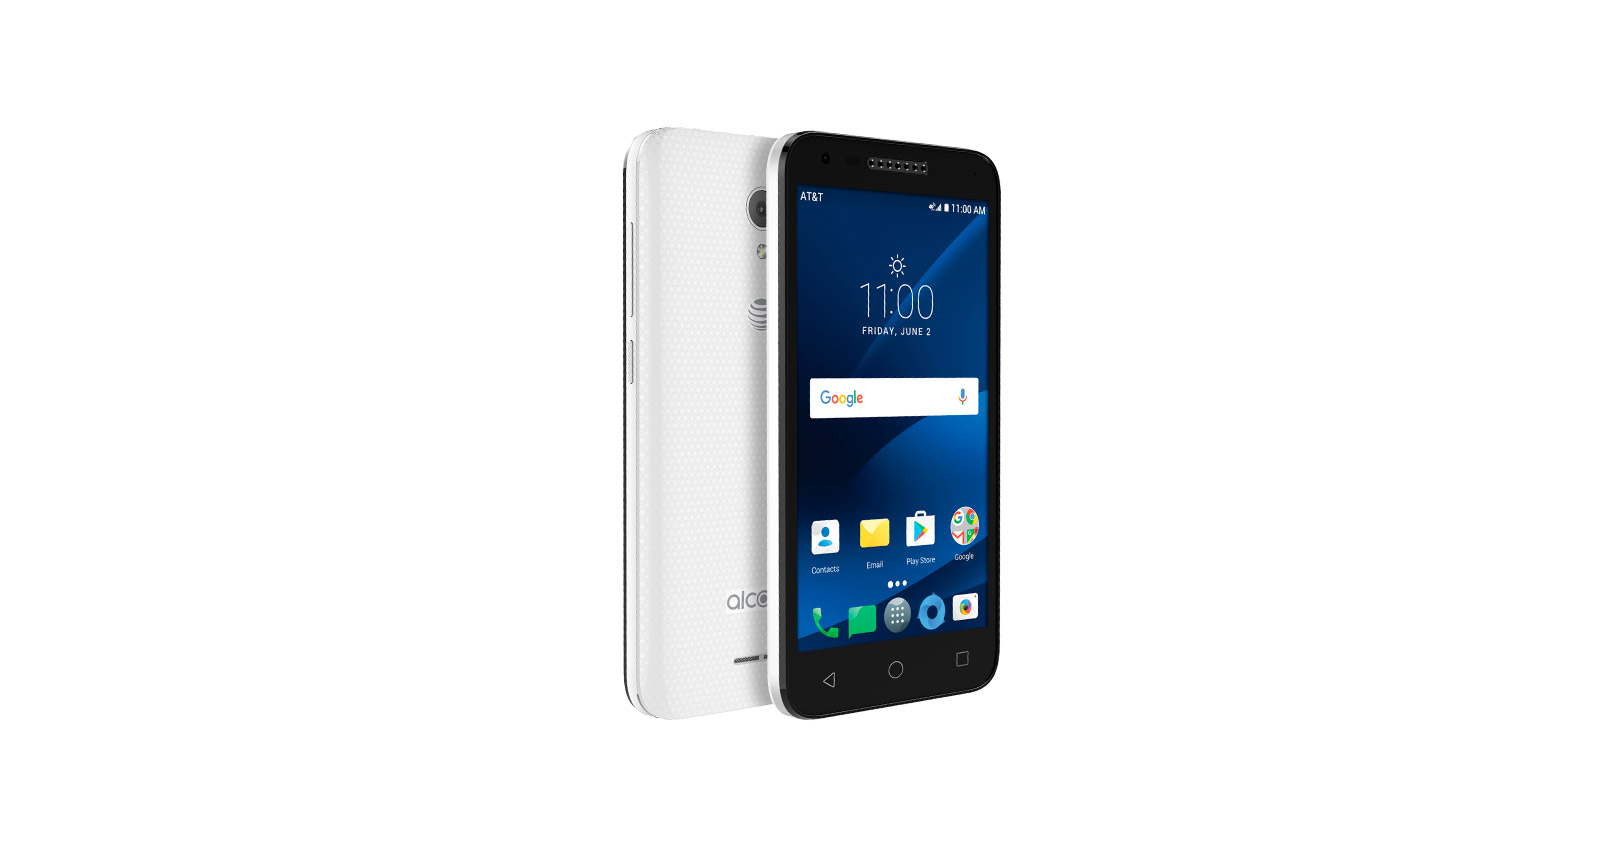 gallery cameox 1 - Alcatel CameoX Price, Specs and Features.